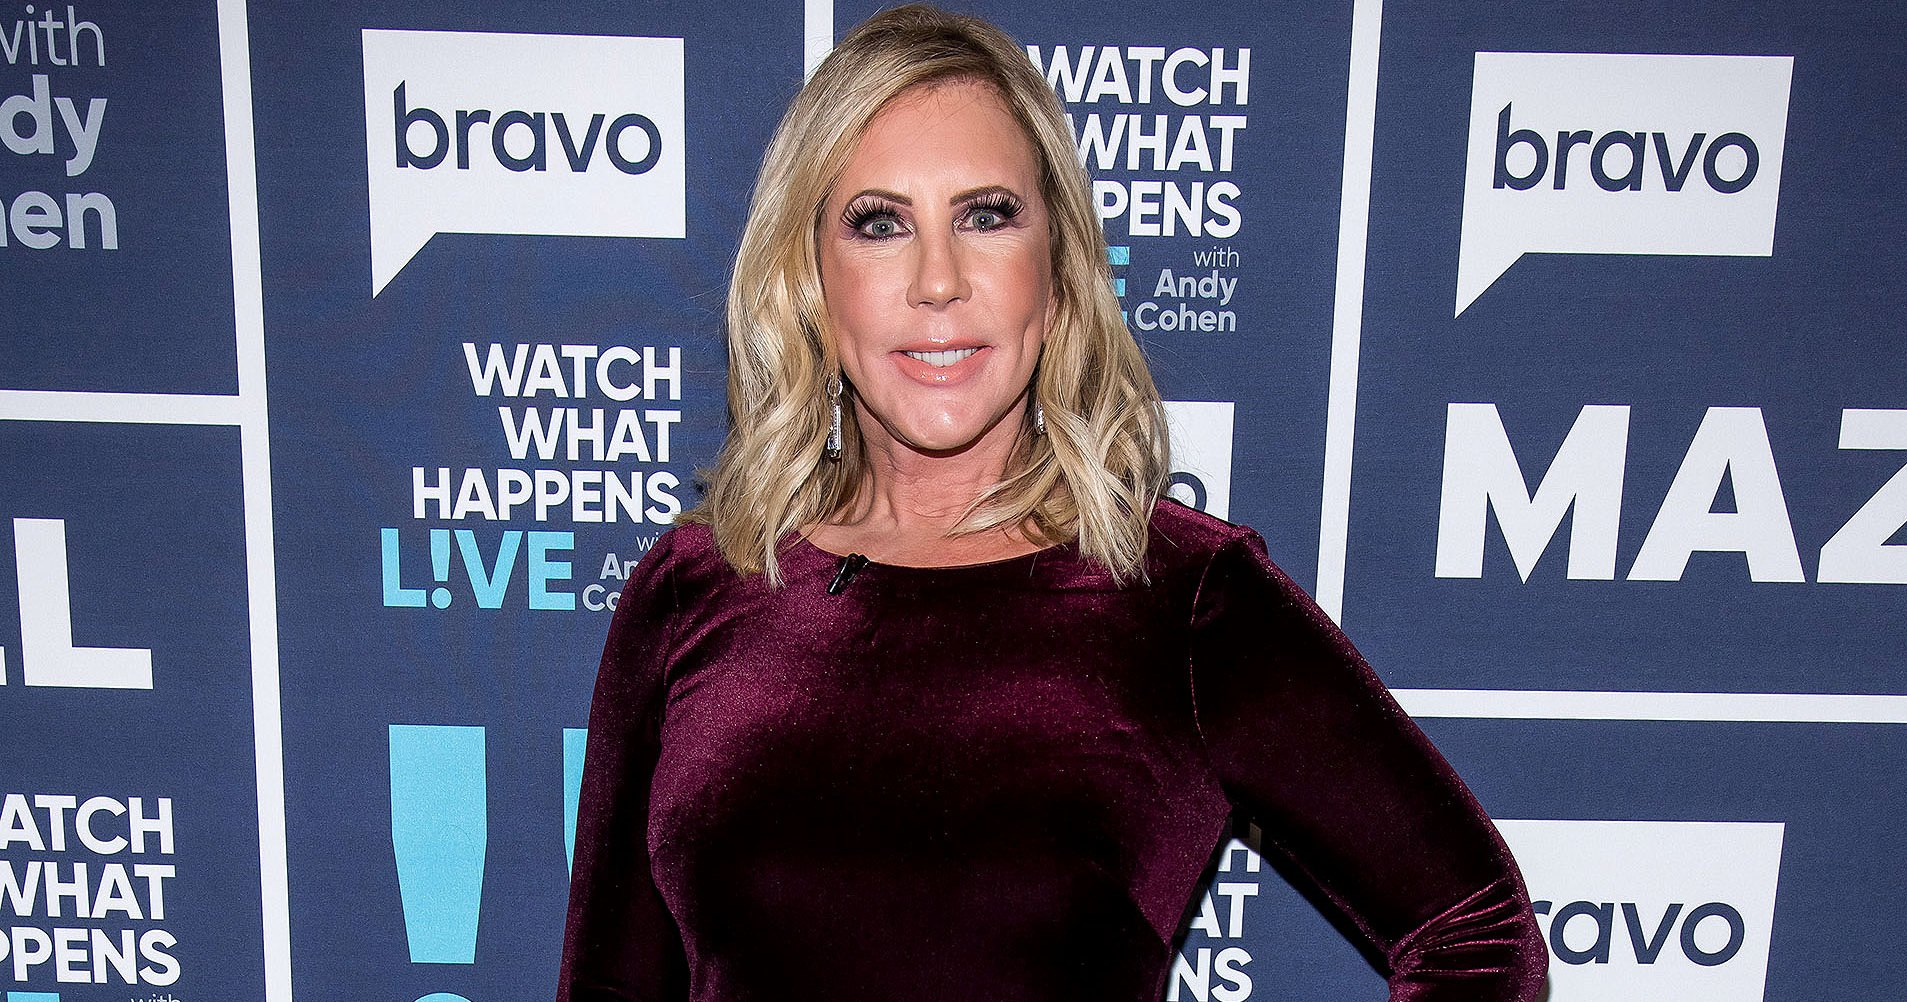 'Real Housewives of Orange County' Star Vicki Gunvalson Begins Filming Season 14 Amid Drama With Castmate Kelly Dodd